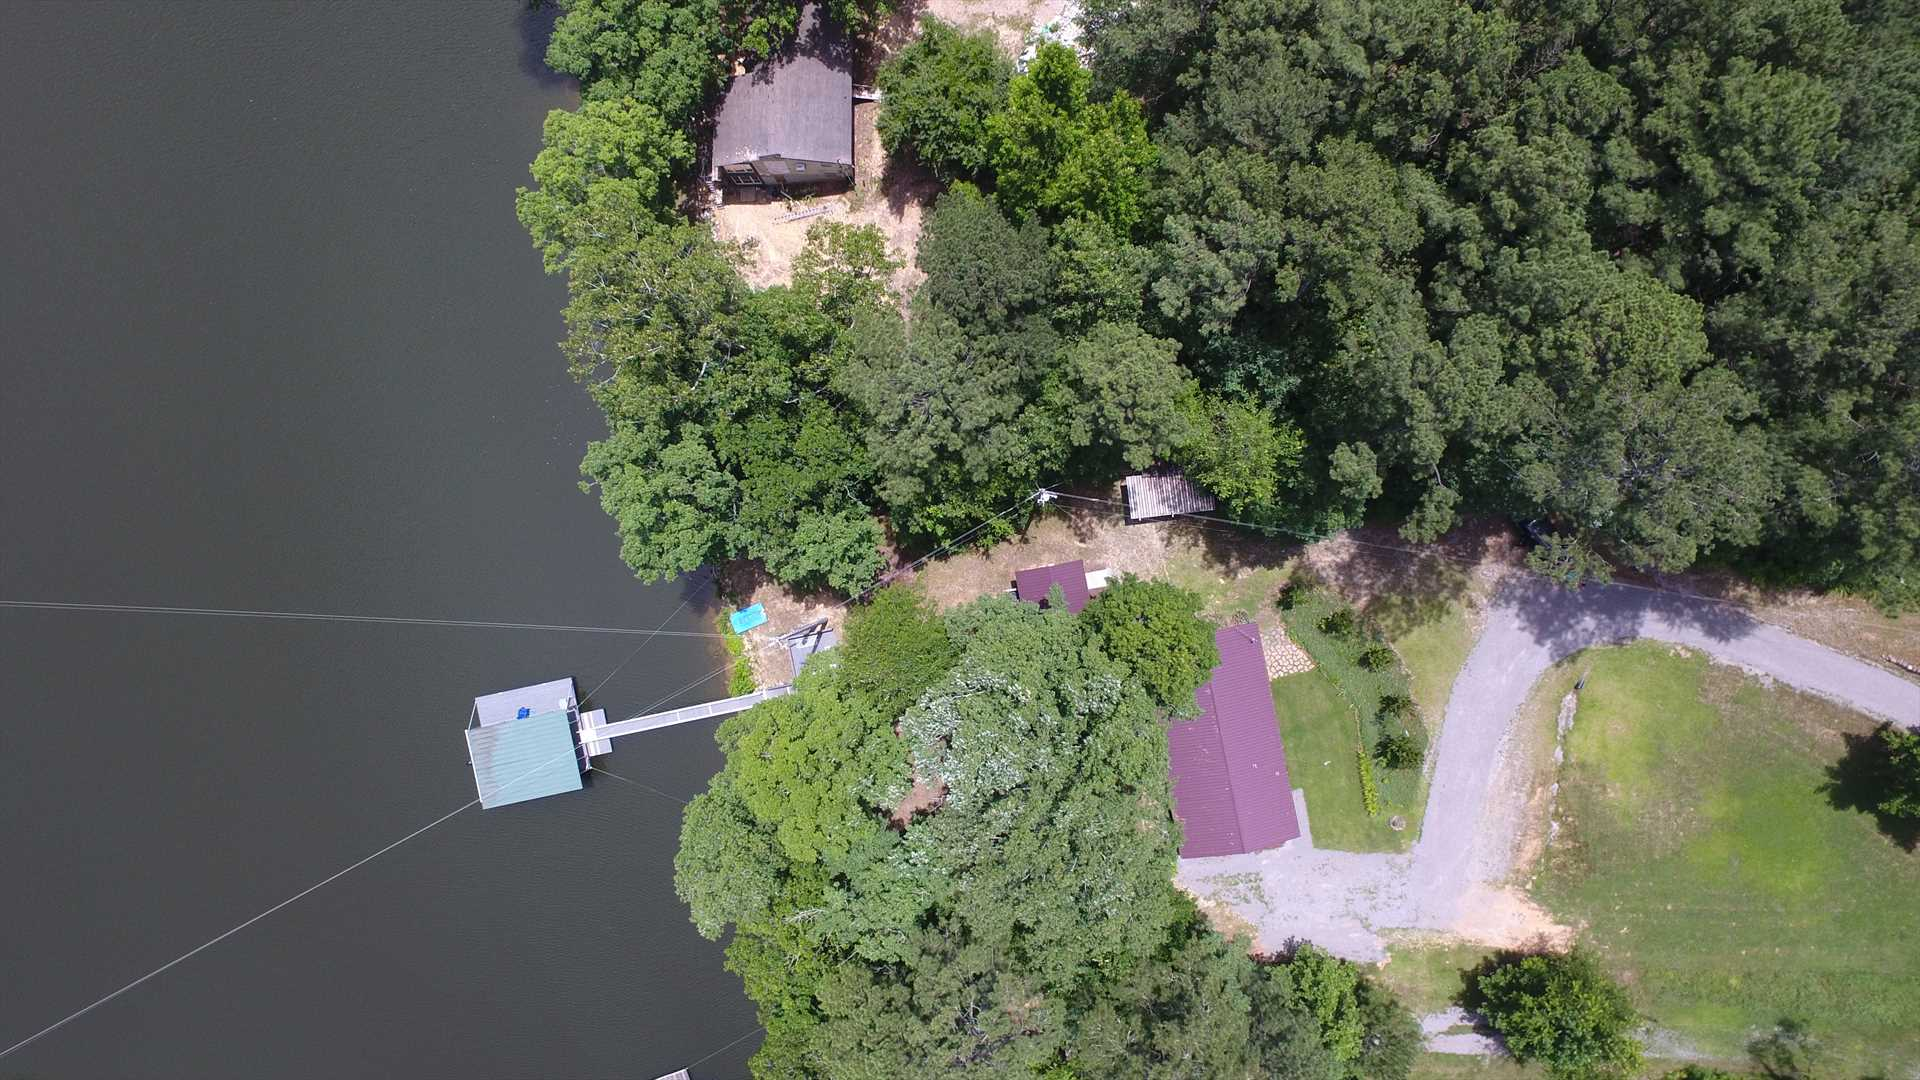 House and dock from drone